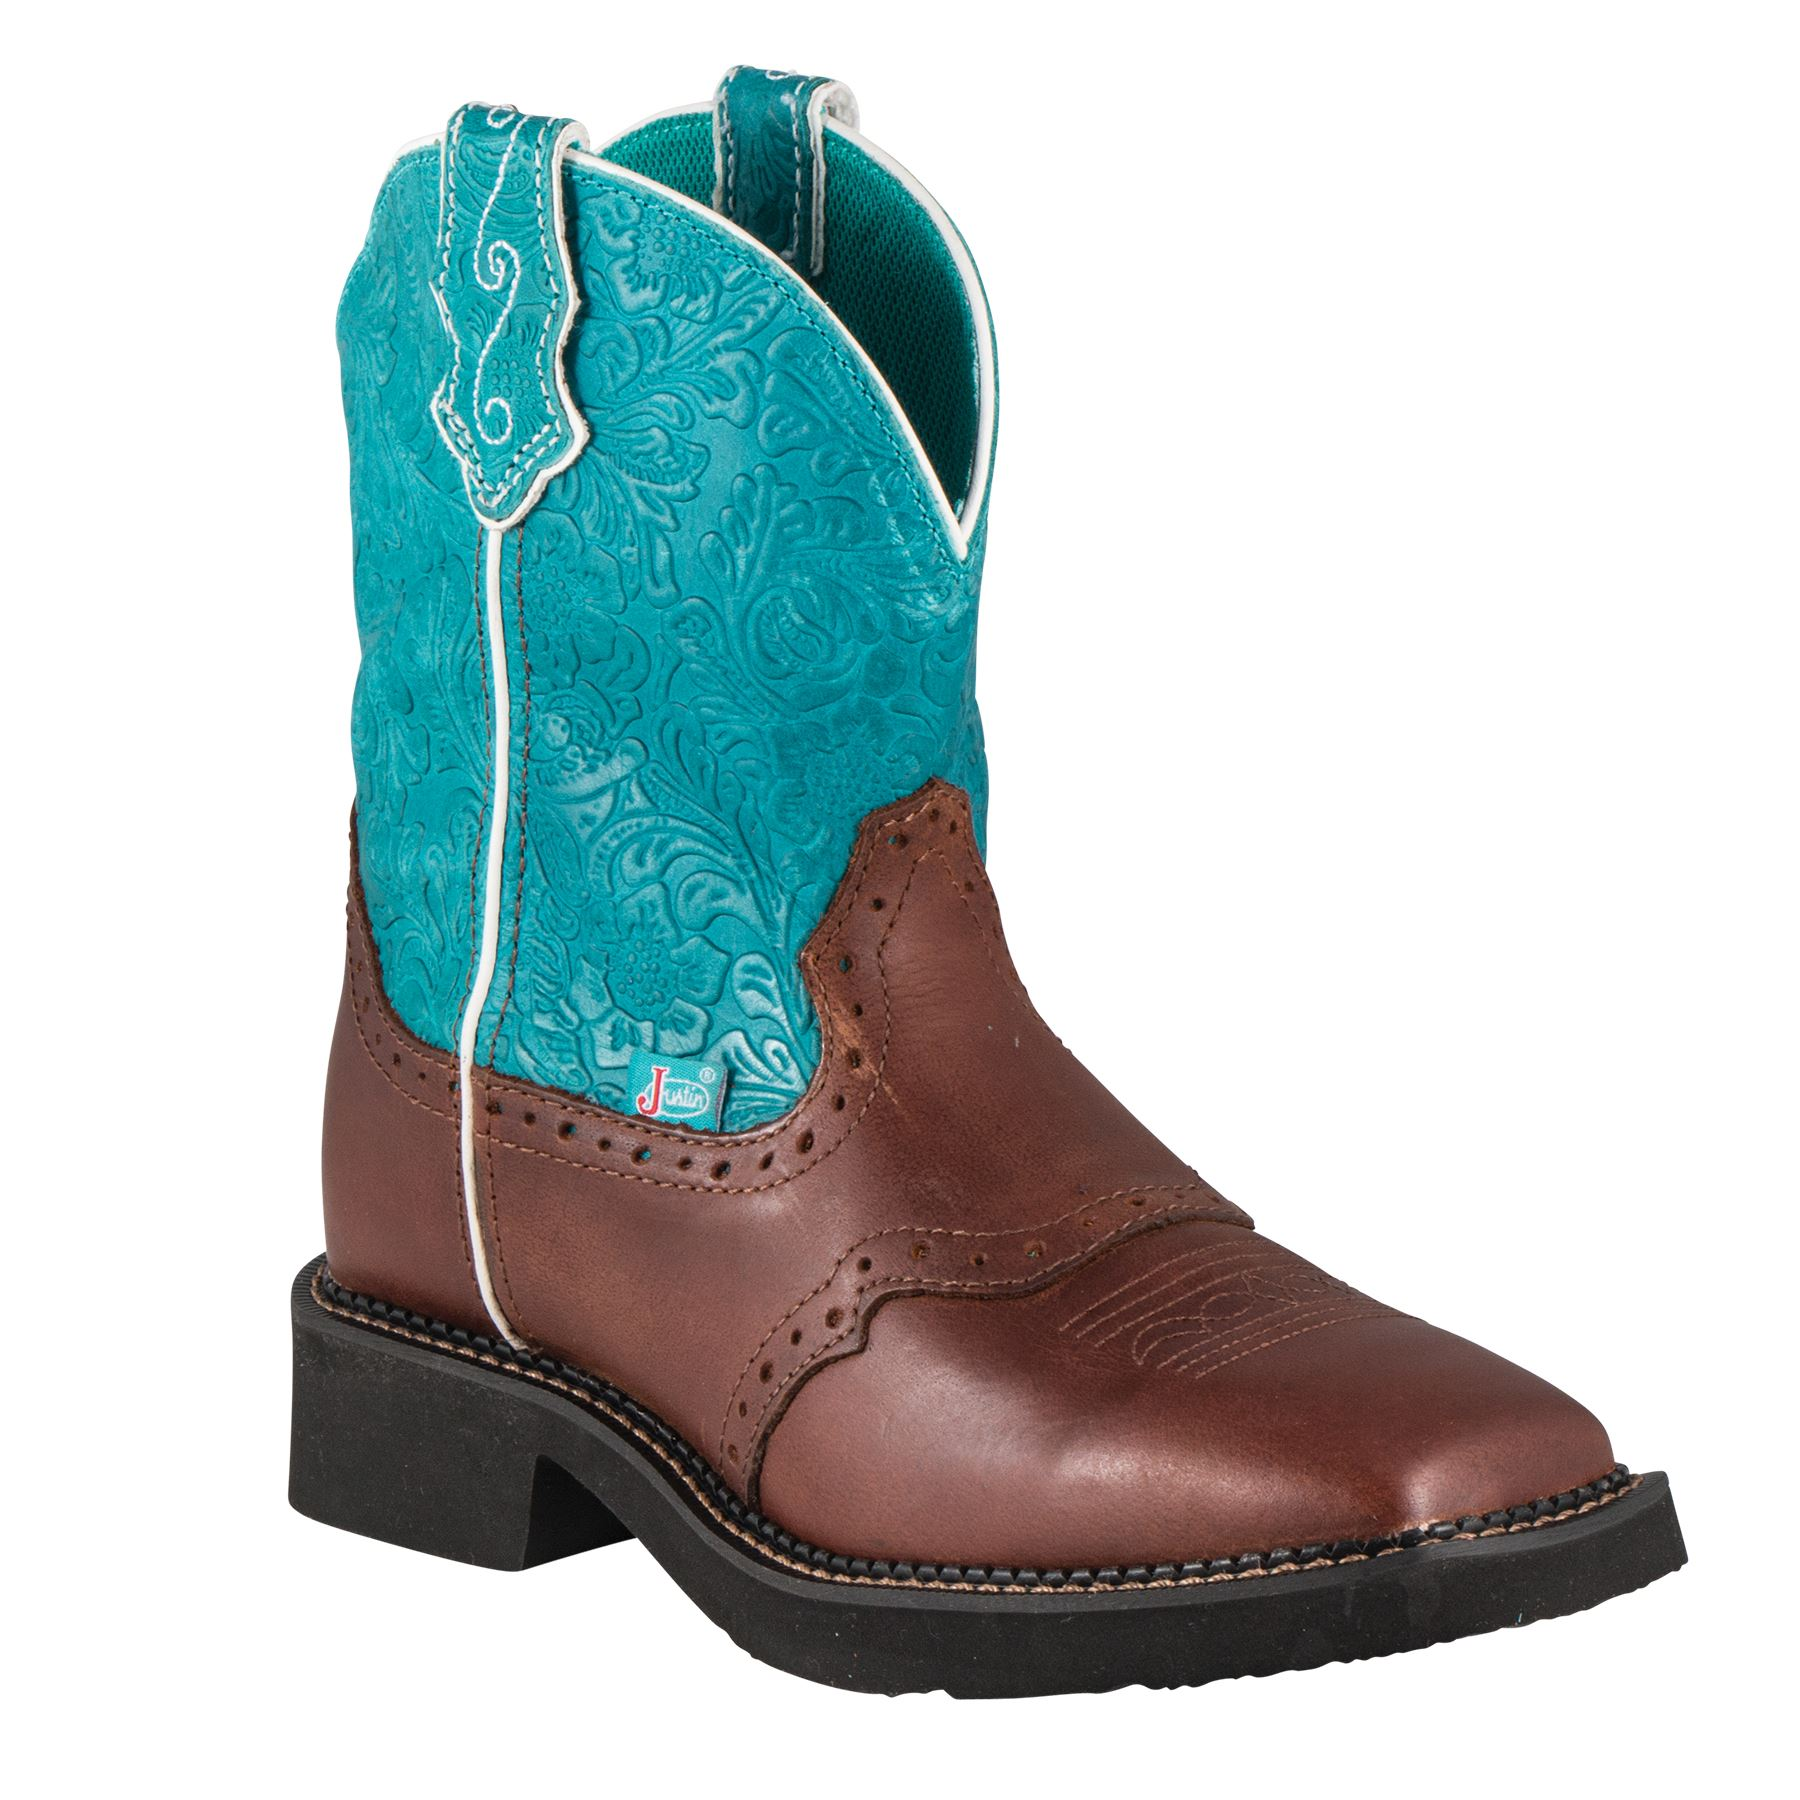 "Justin Ladies Gypsy 8"" Cognac/Teal Cowgirl Boots"